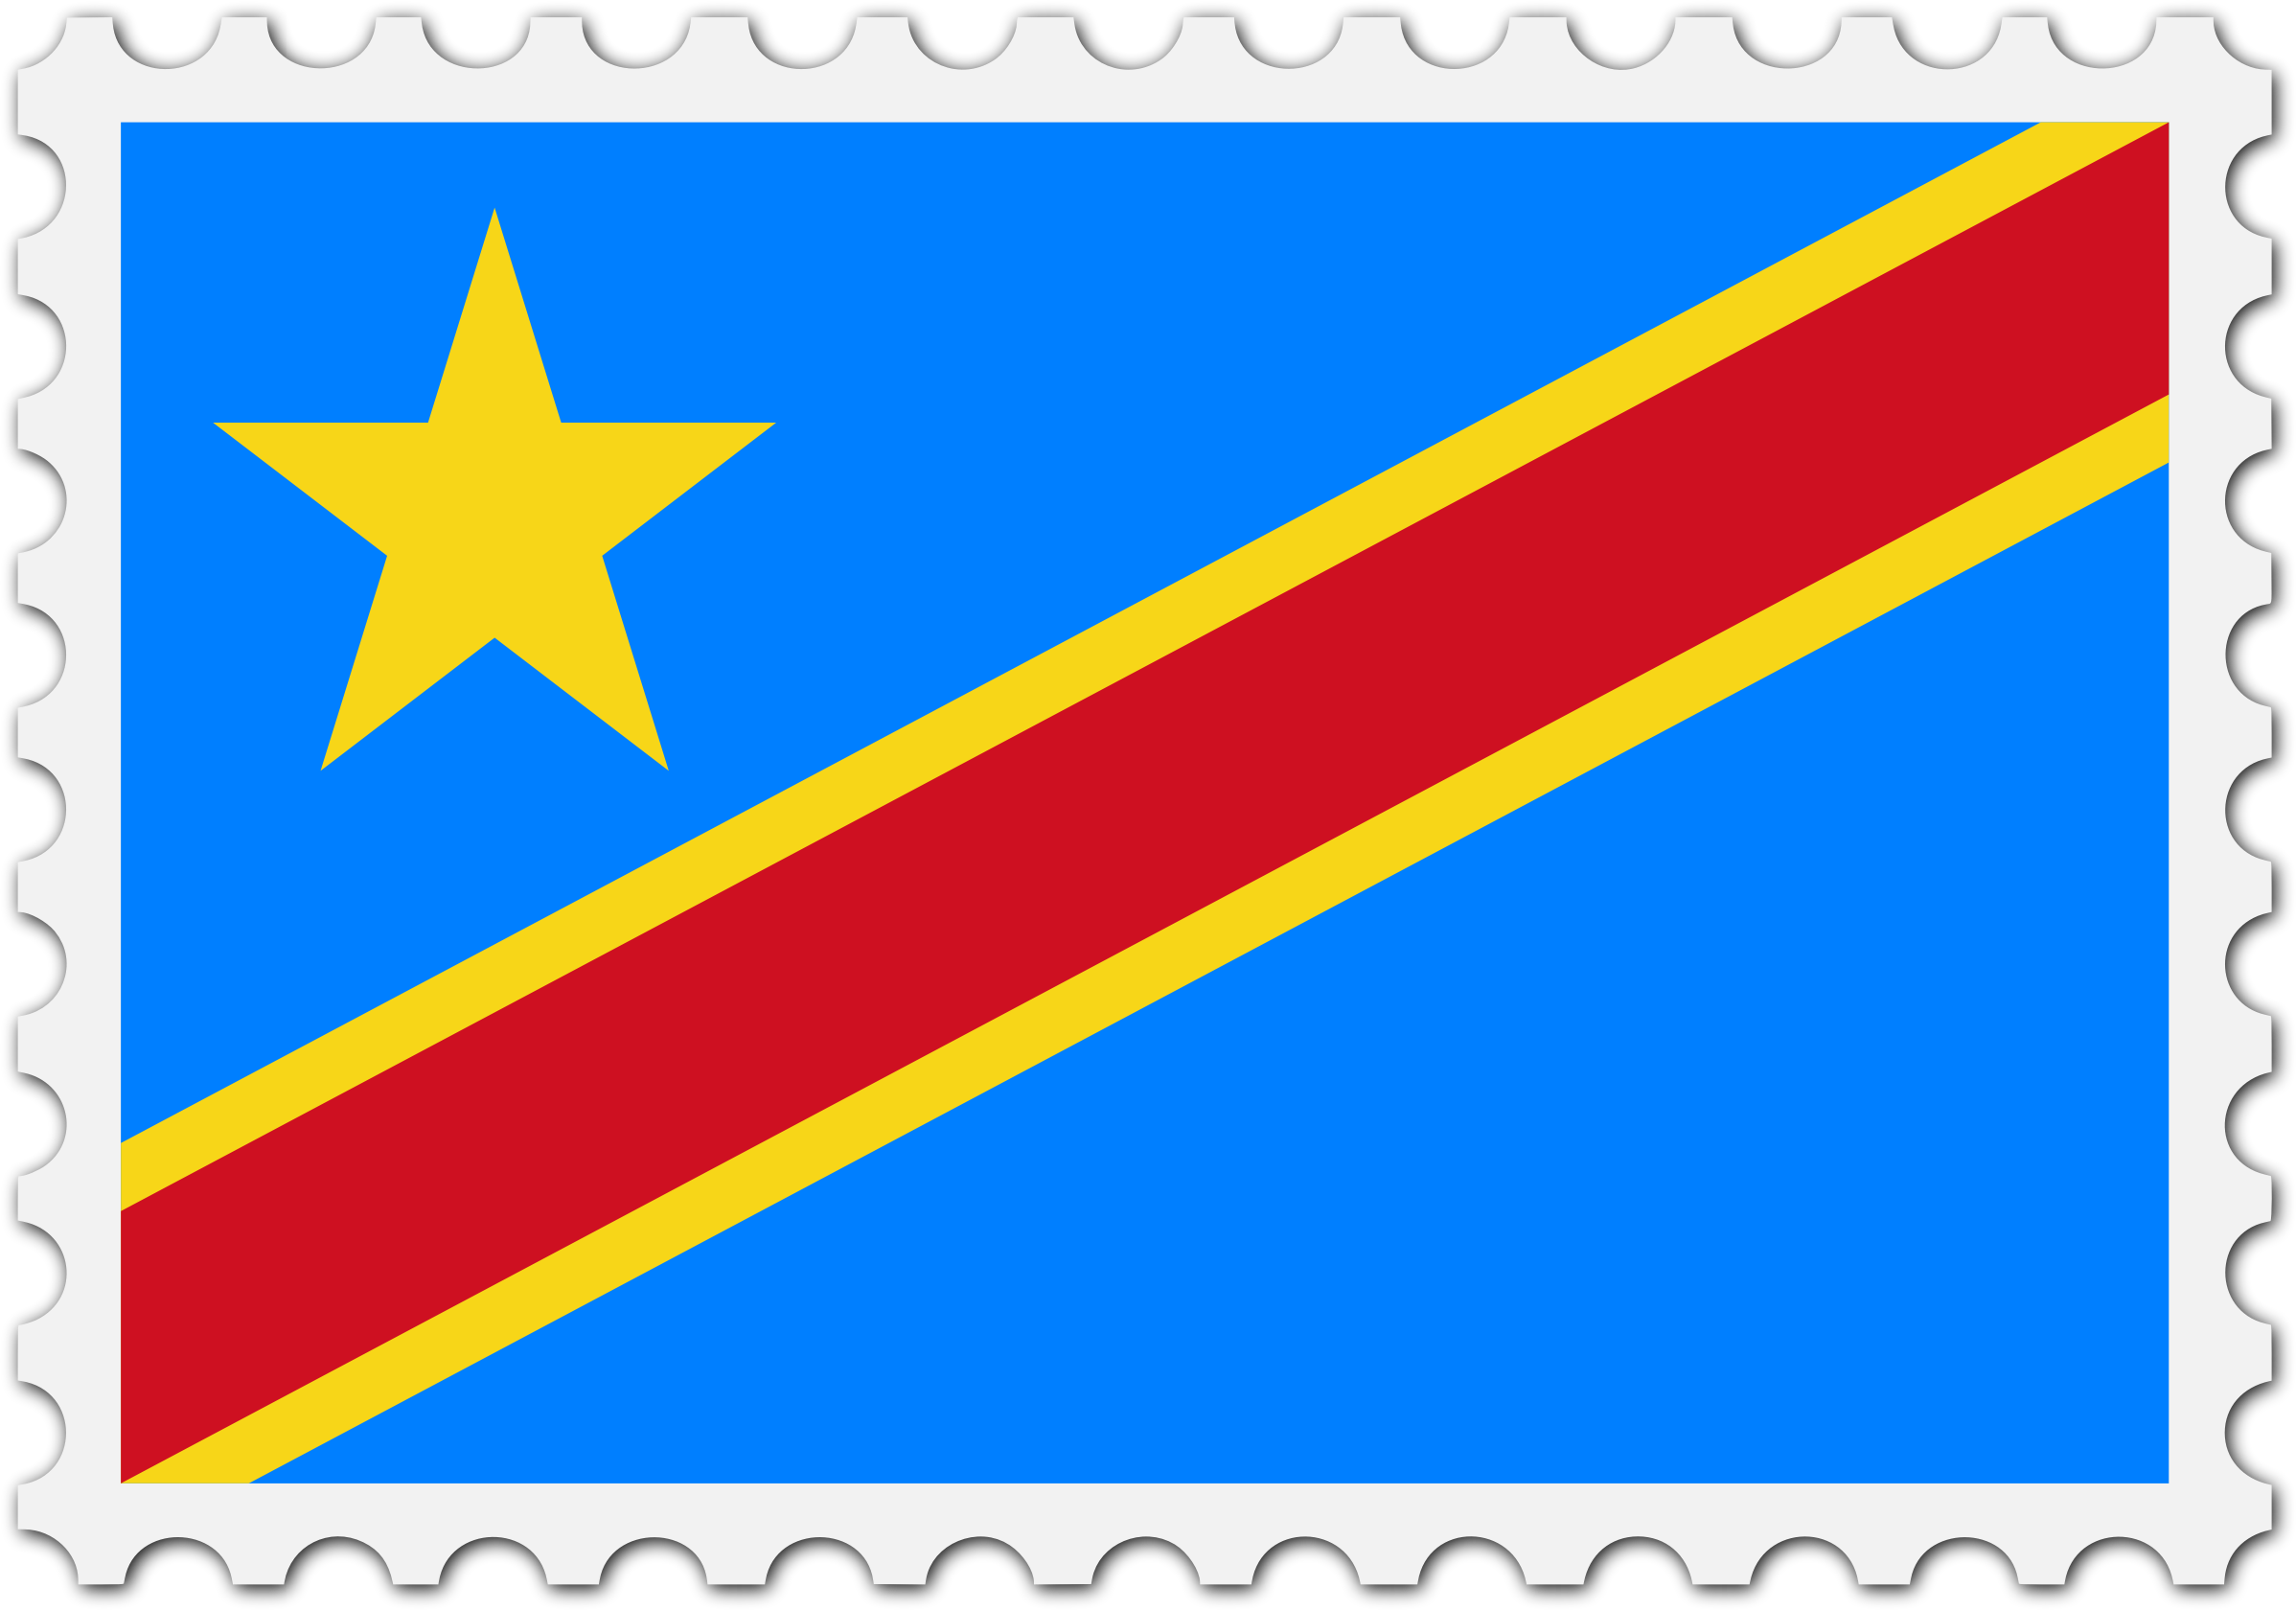 Democratic Republic of the Congo flag stamp by Firkin